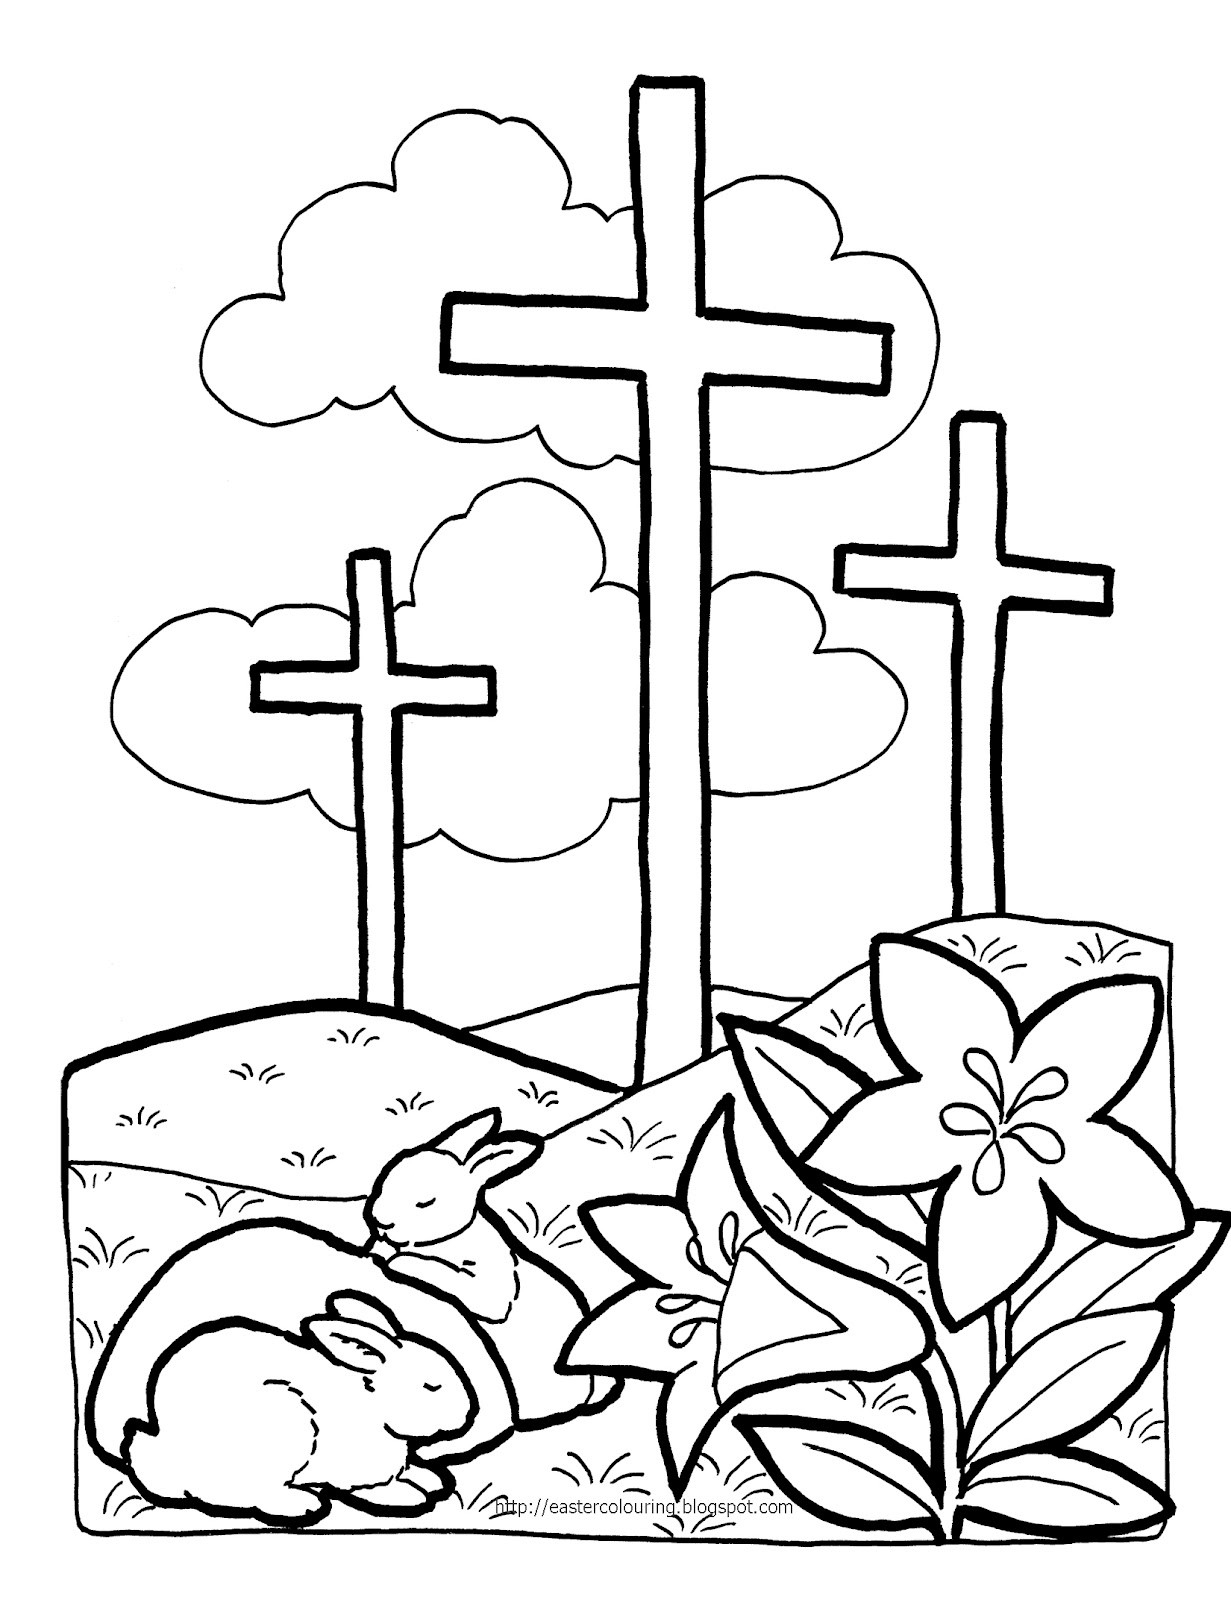 Free Printable Religious Worksheets Math Worksheet Bible Coloring Pages Printable Christian